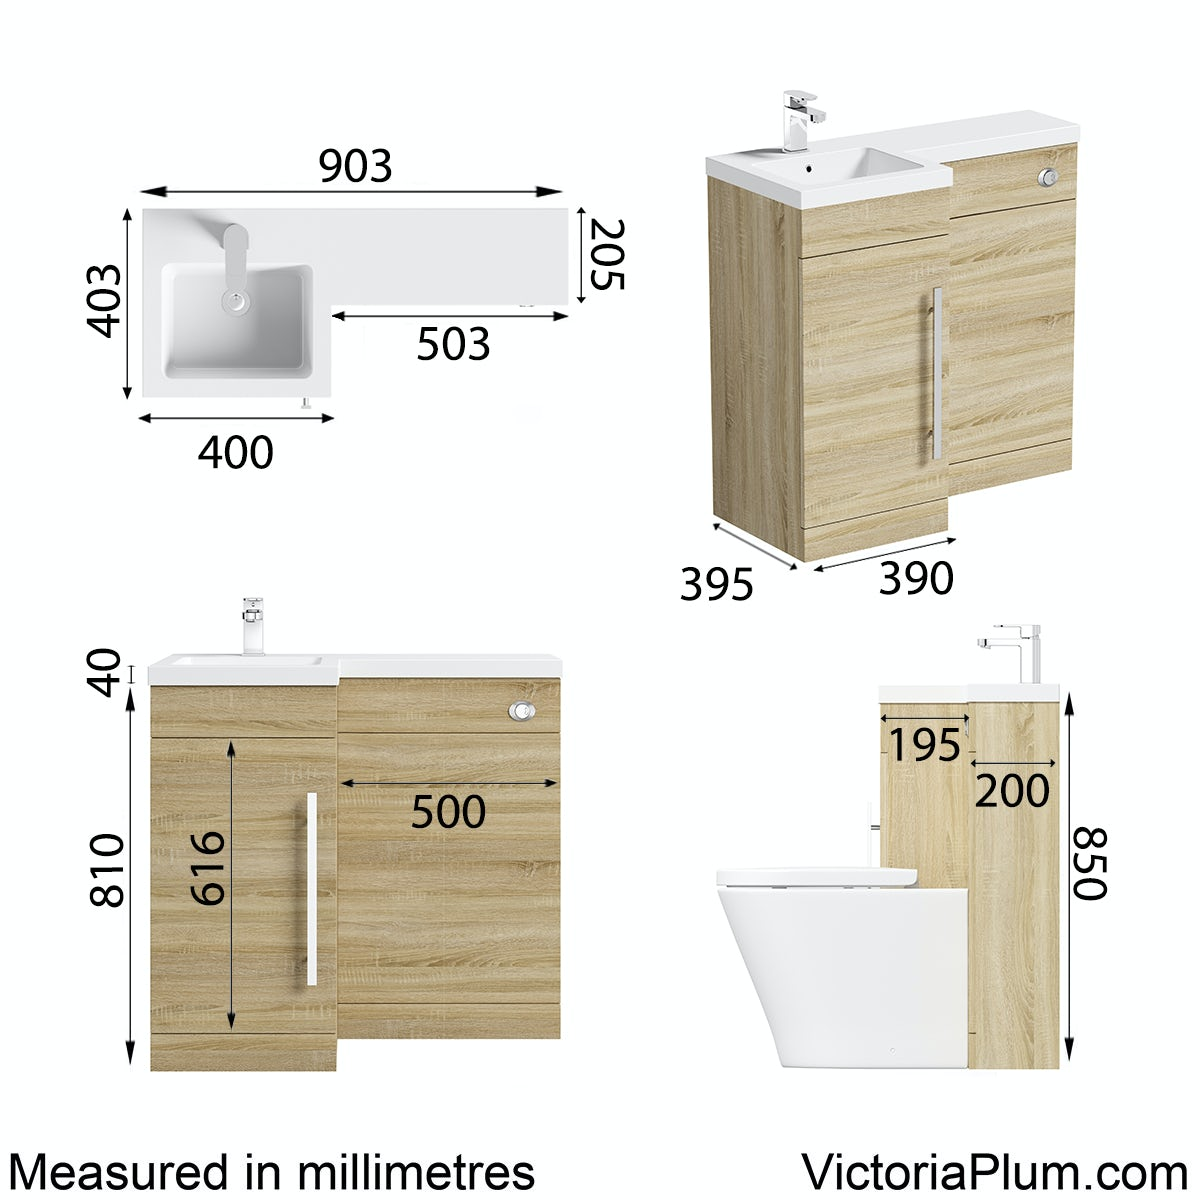 Dimensions for Orchard MySpace oak right handed unit including concealed cistern